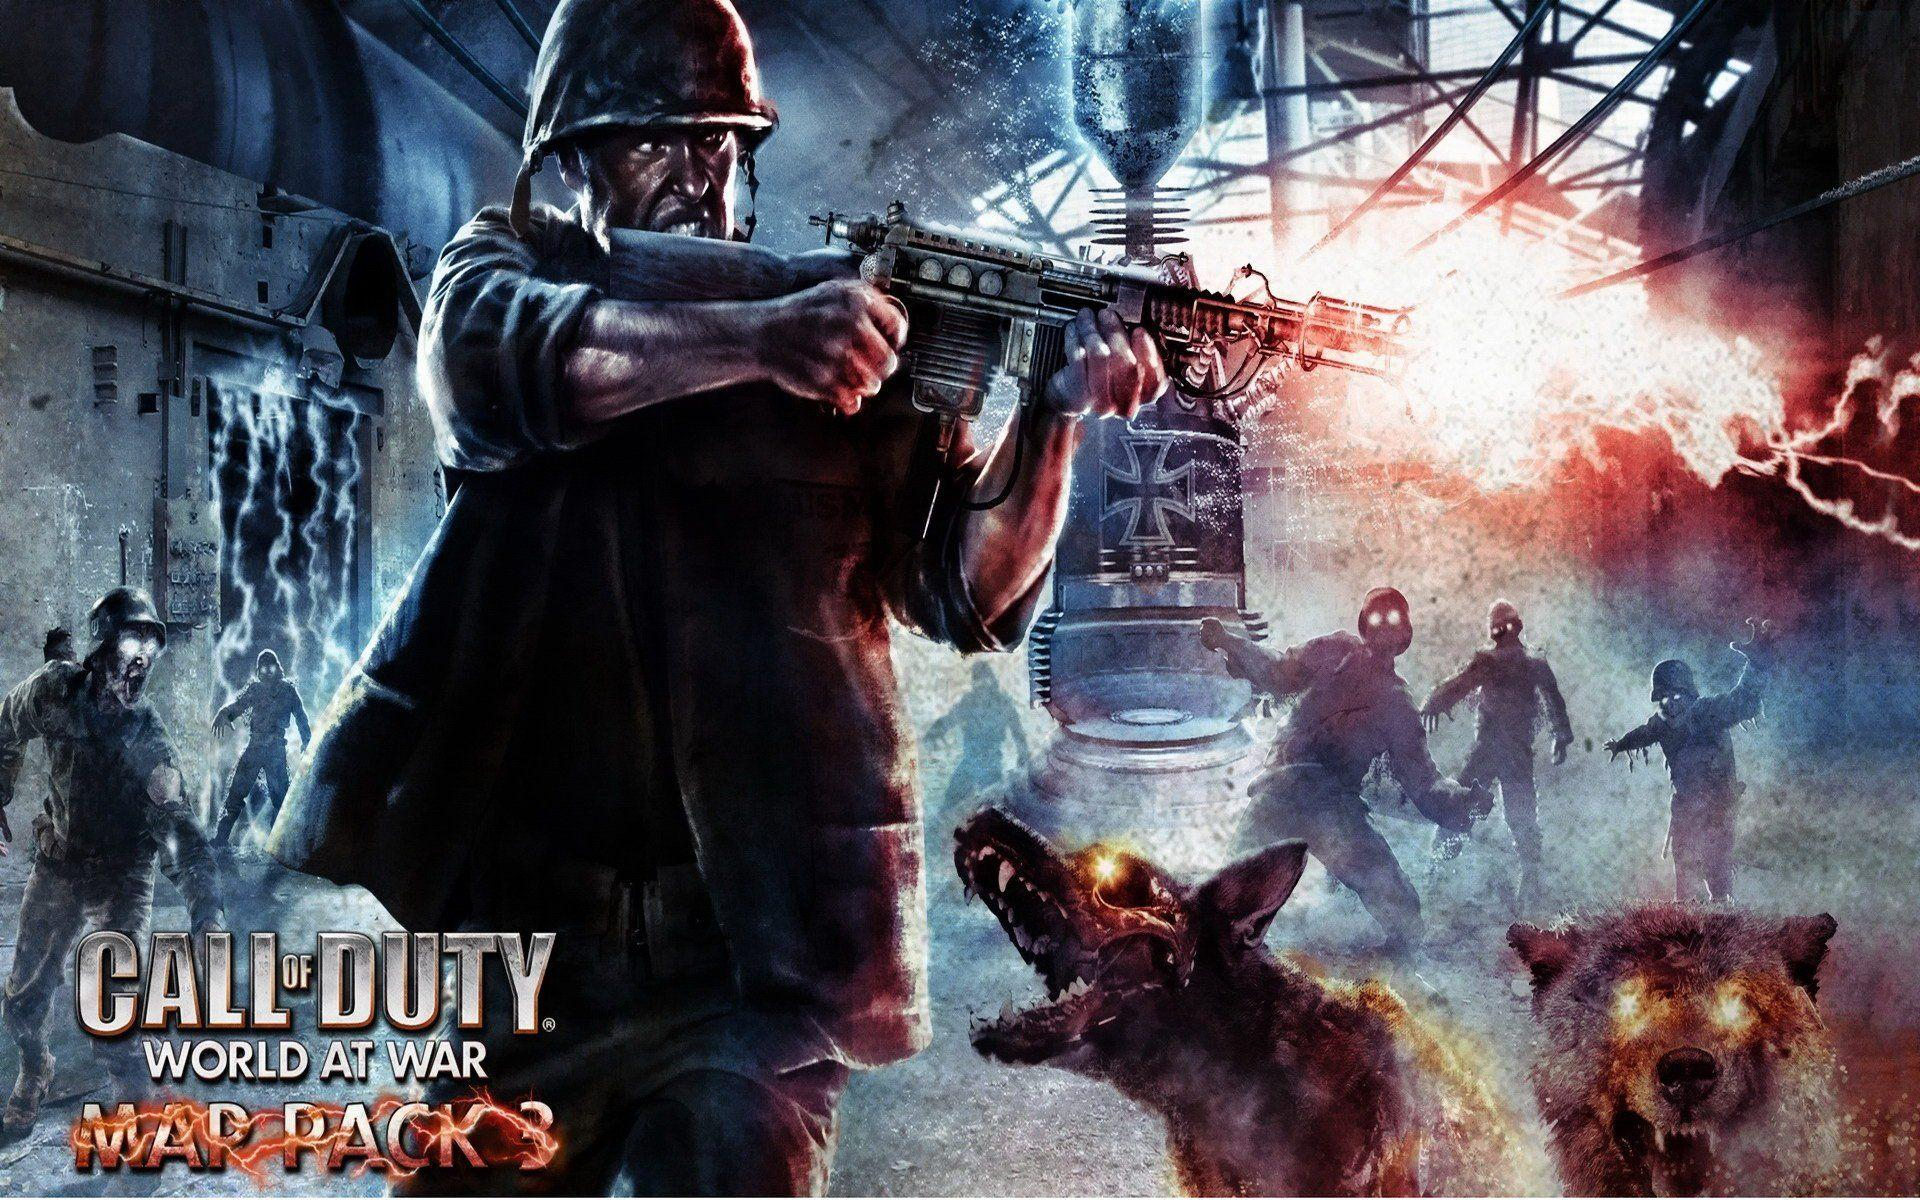 Call of duty ww2 zombies wallpapers wallpaper cave - Call of duty ww2 desktop ...